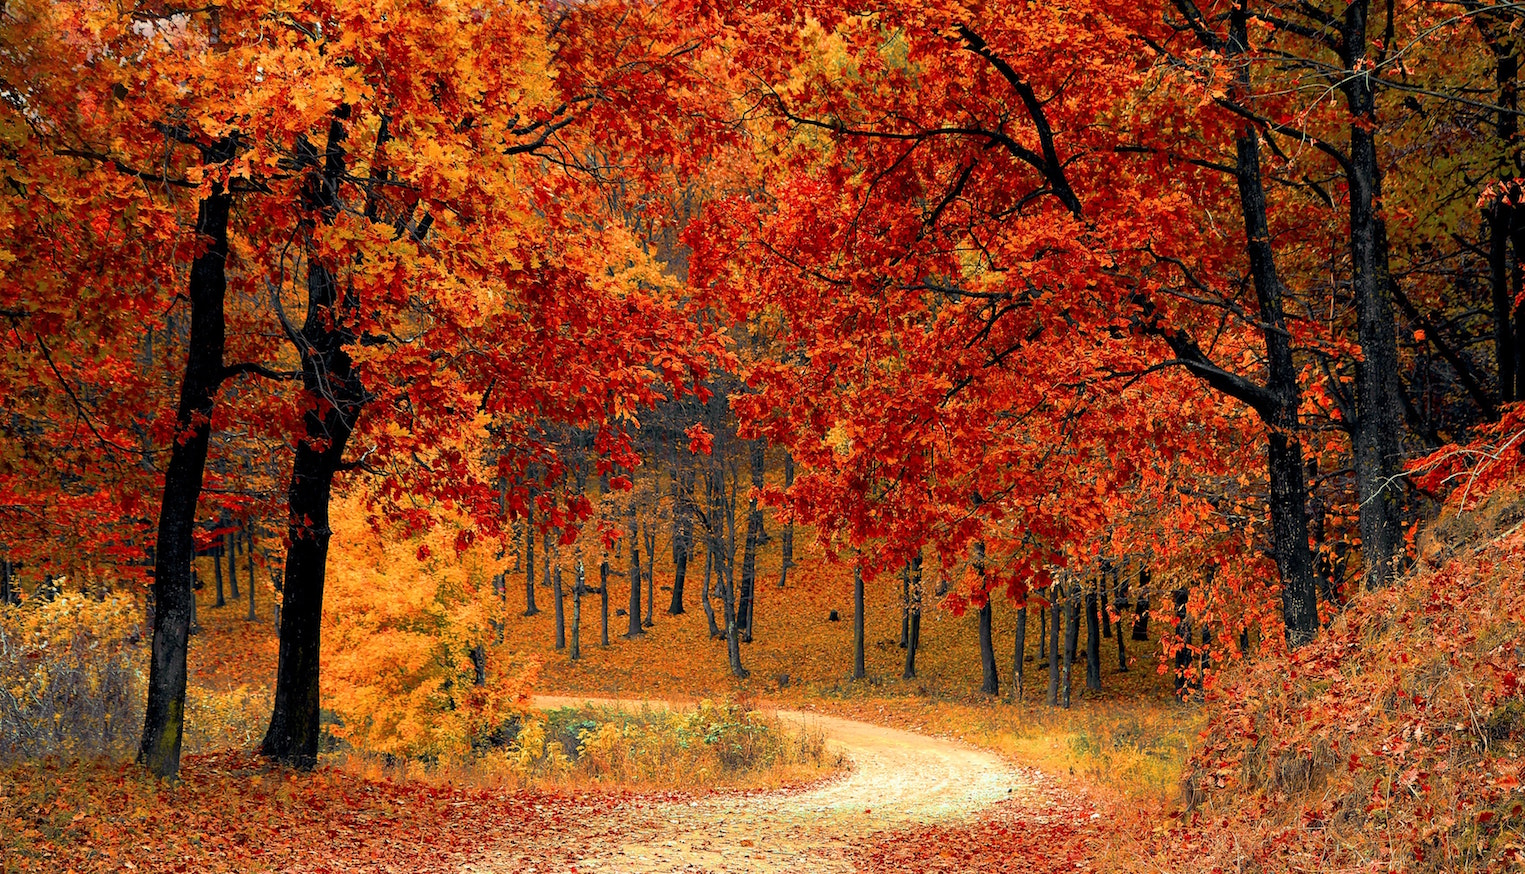 Fall festival colors | Outdoorsy RV Rental Marketplace